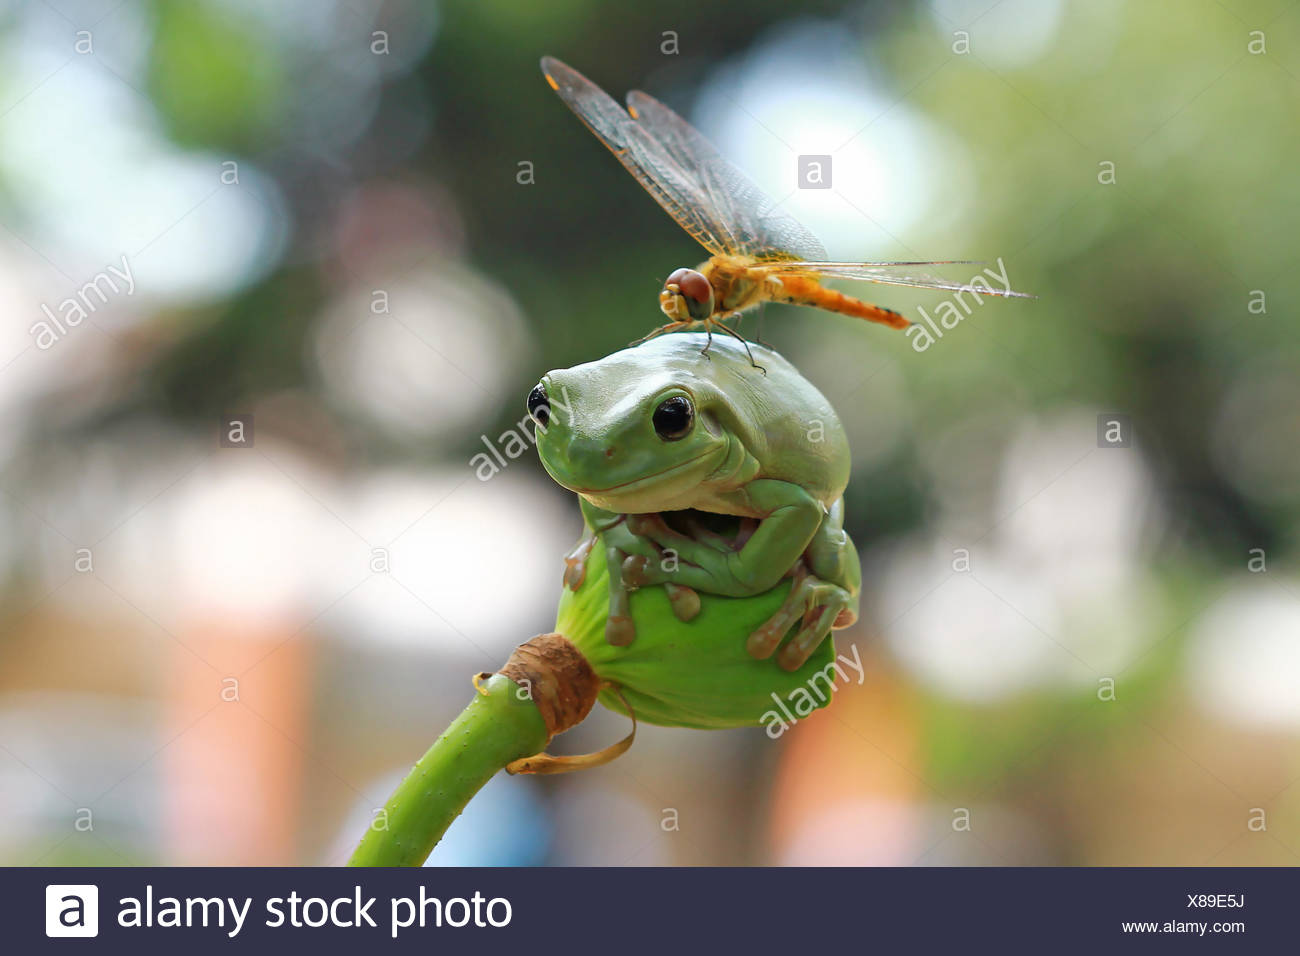 Dragonfly sitting on dumpy frog, Indonesia - Stock Image